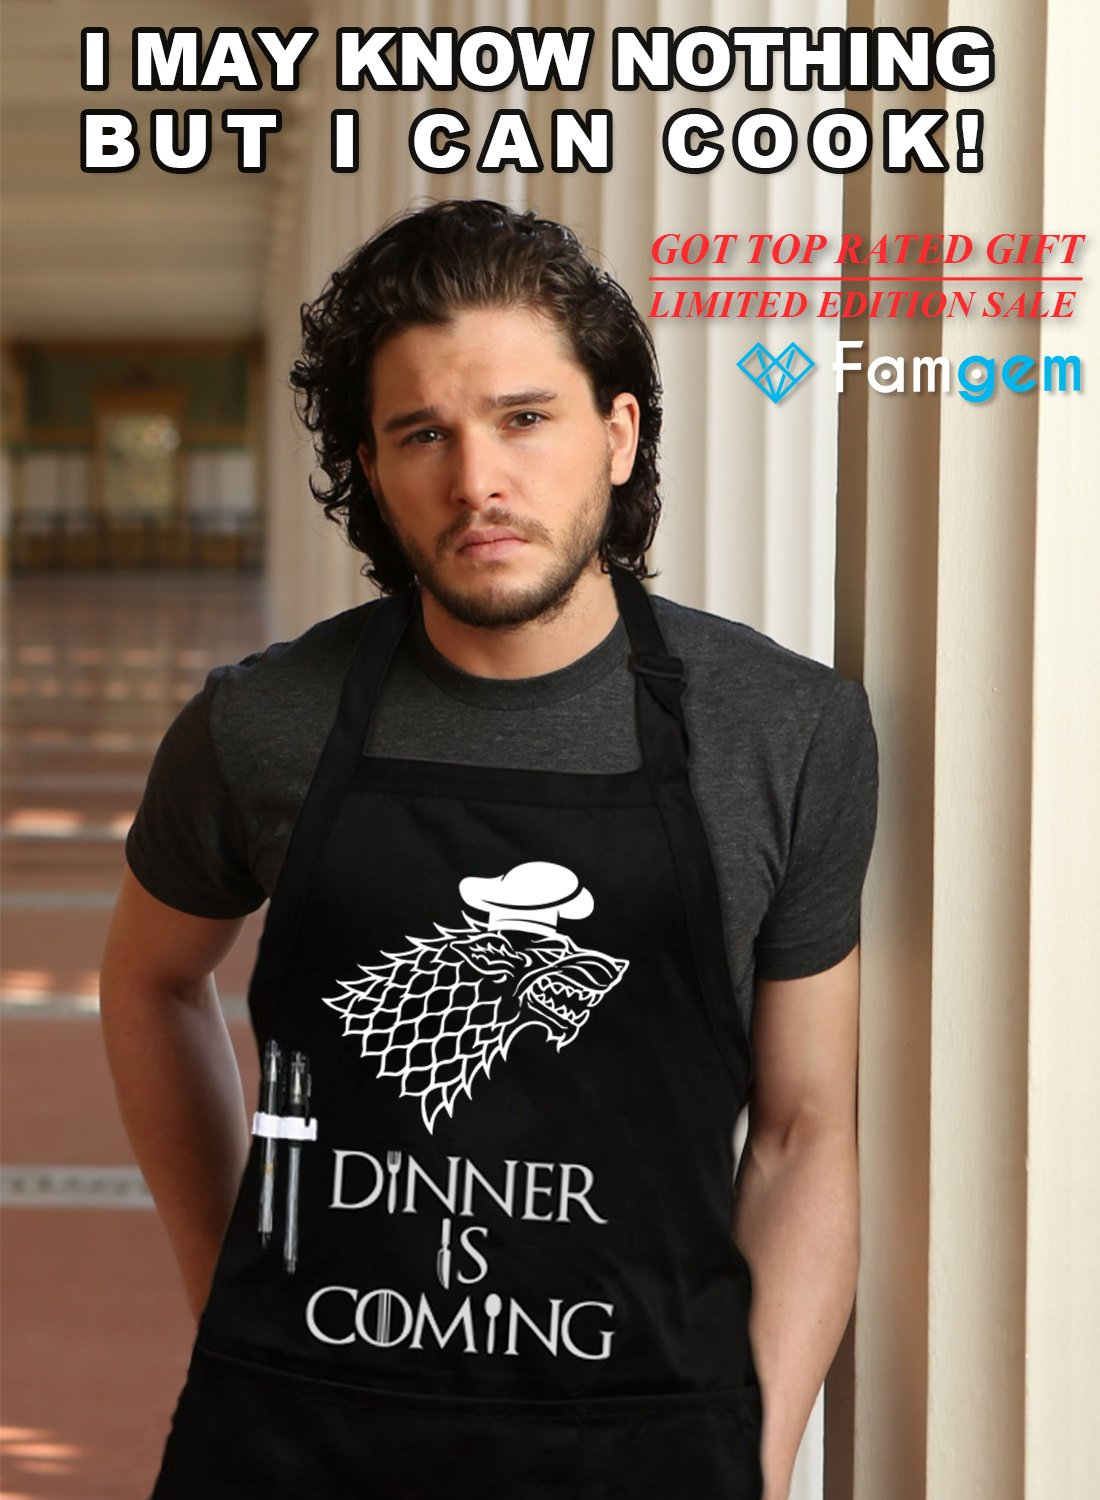 Grill Aprons Kitchen Chef Bib - Famgem Dinner is Coming Professional for BBQ, Baking, Cooking for Men Women / 100% Cotton, Adjustable 3 Pockets, Black by Famgem (Image #2)